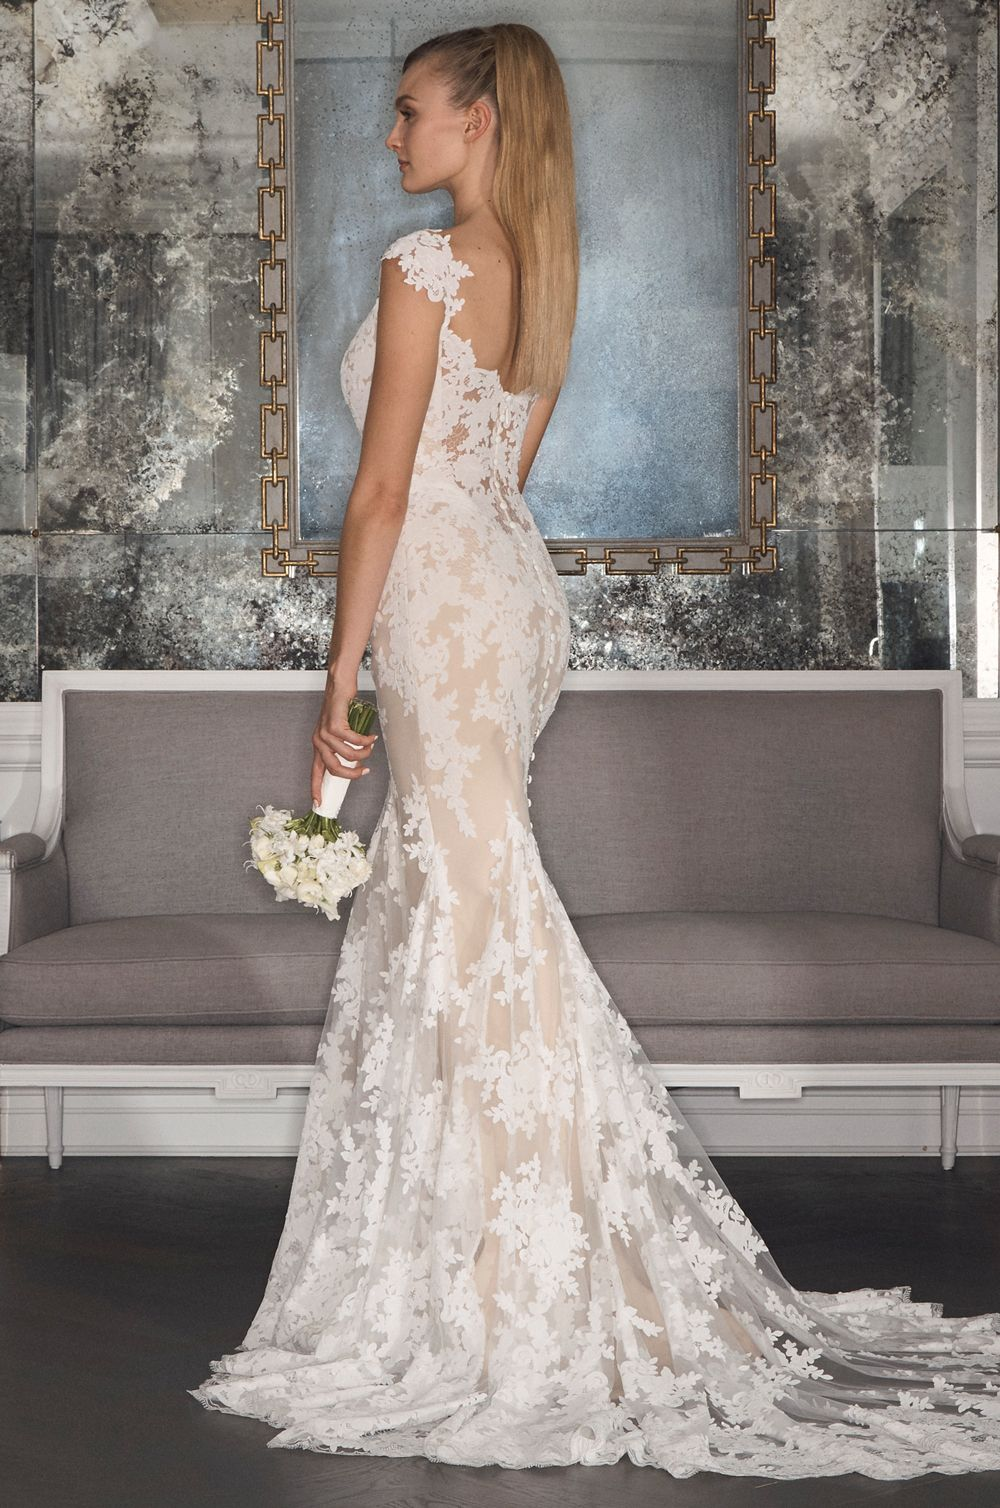 Neiman marcus dresses for weddings  Romona Keveža Collection Bridal Style RK  Wedding  Pinterest